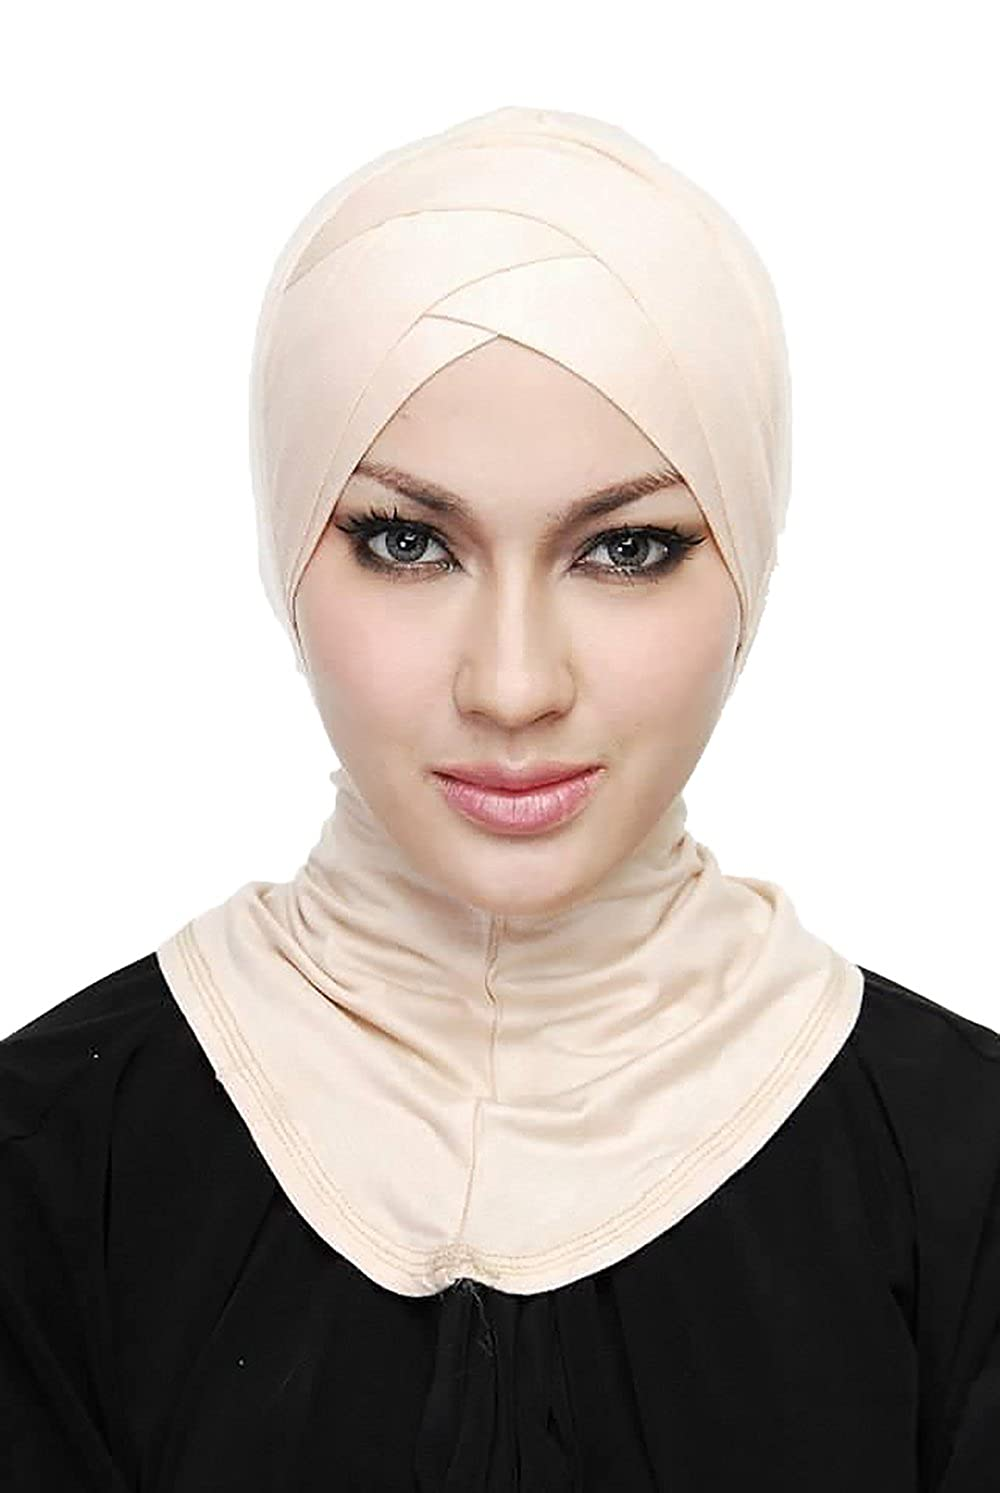 glen hope muslim women dating site 8 things to expect when dating a muslim girl  go after muslim women this whole site preaches that if you are going to marry a girl, make sure she's a virgin .